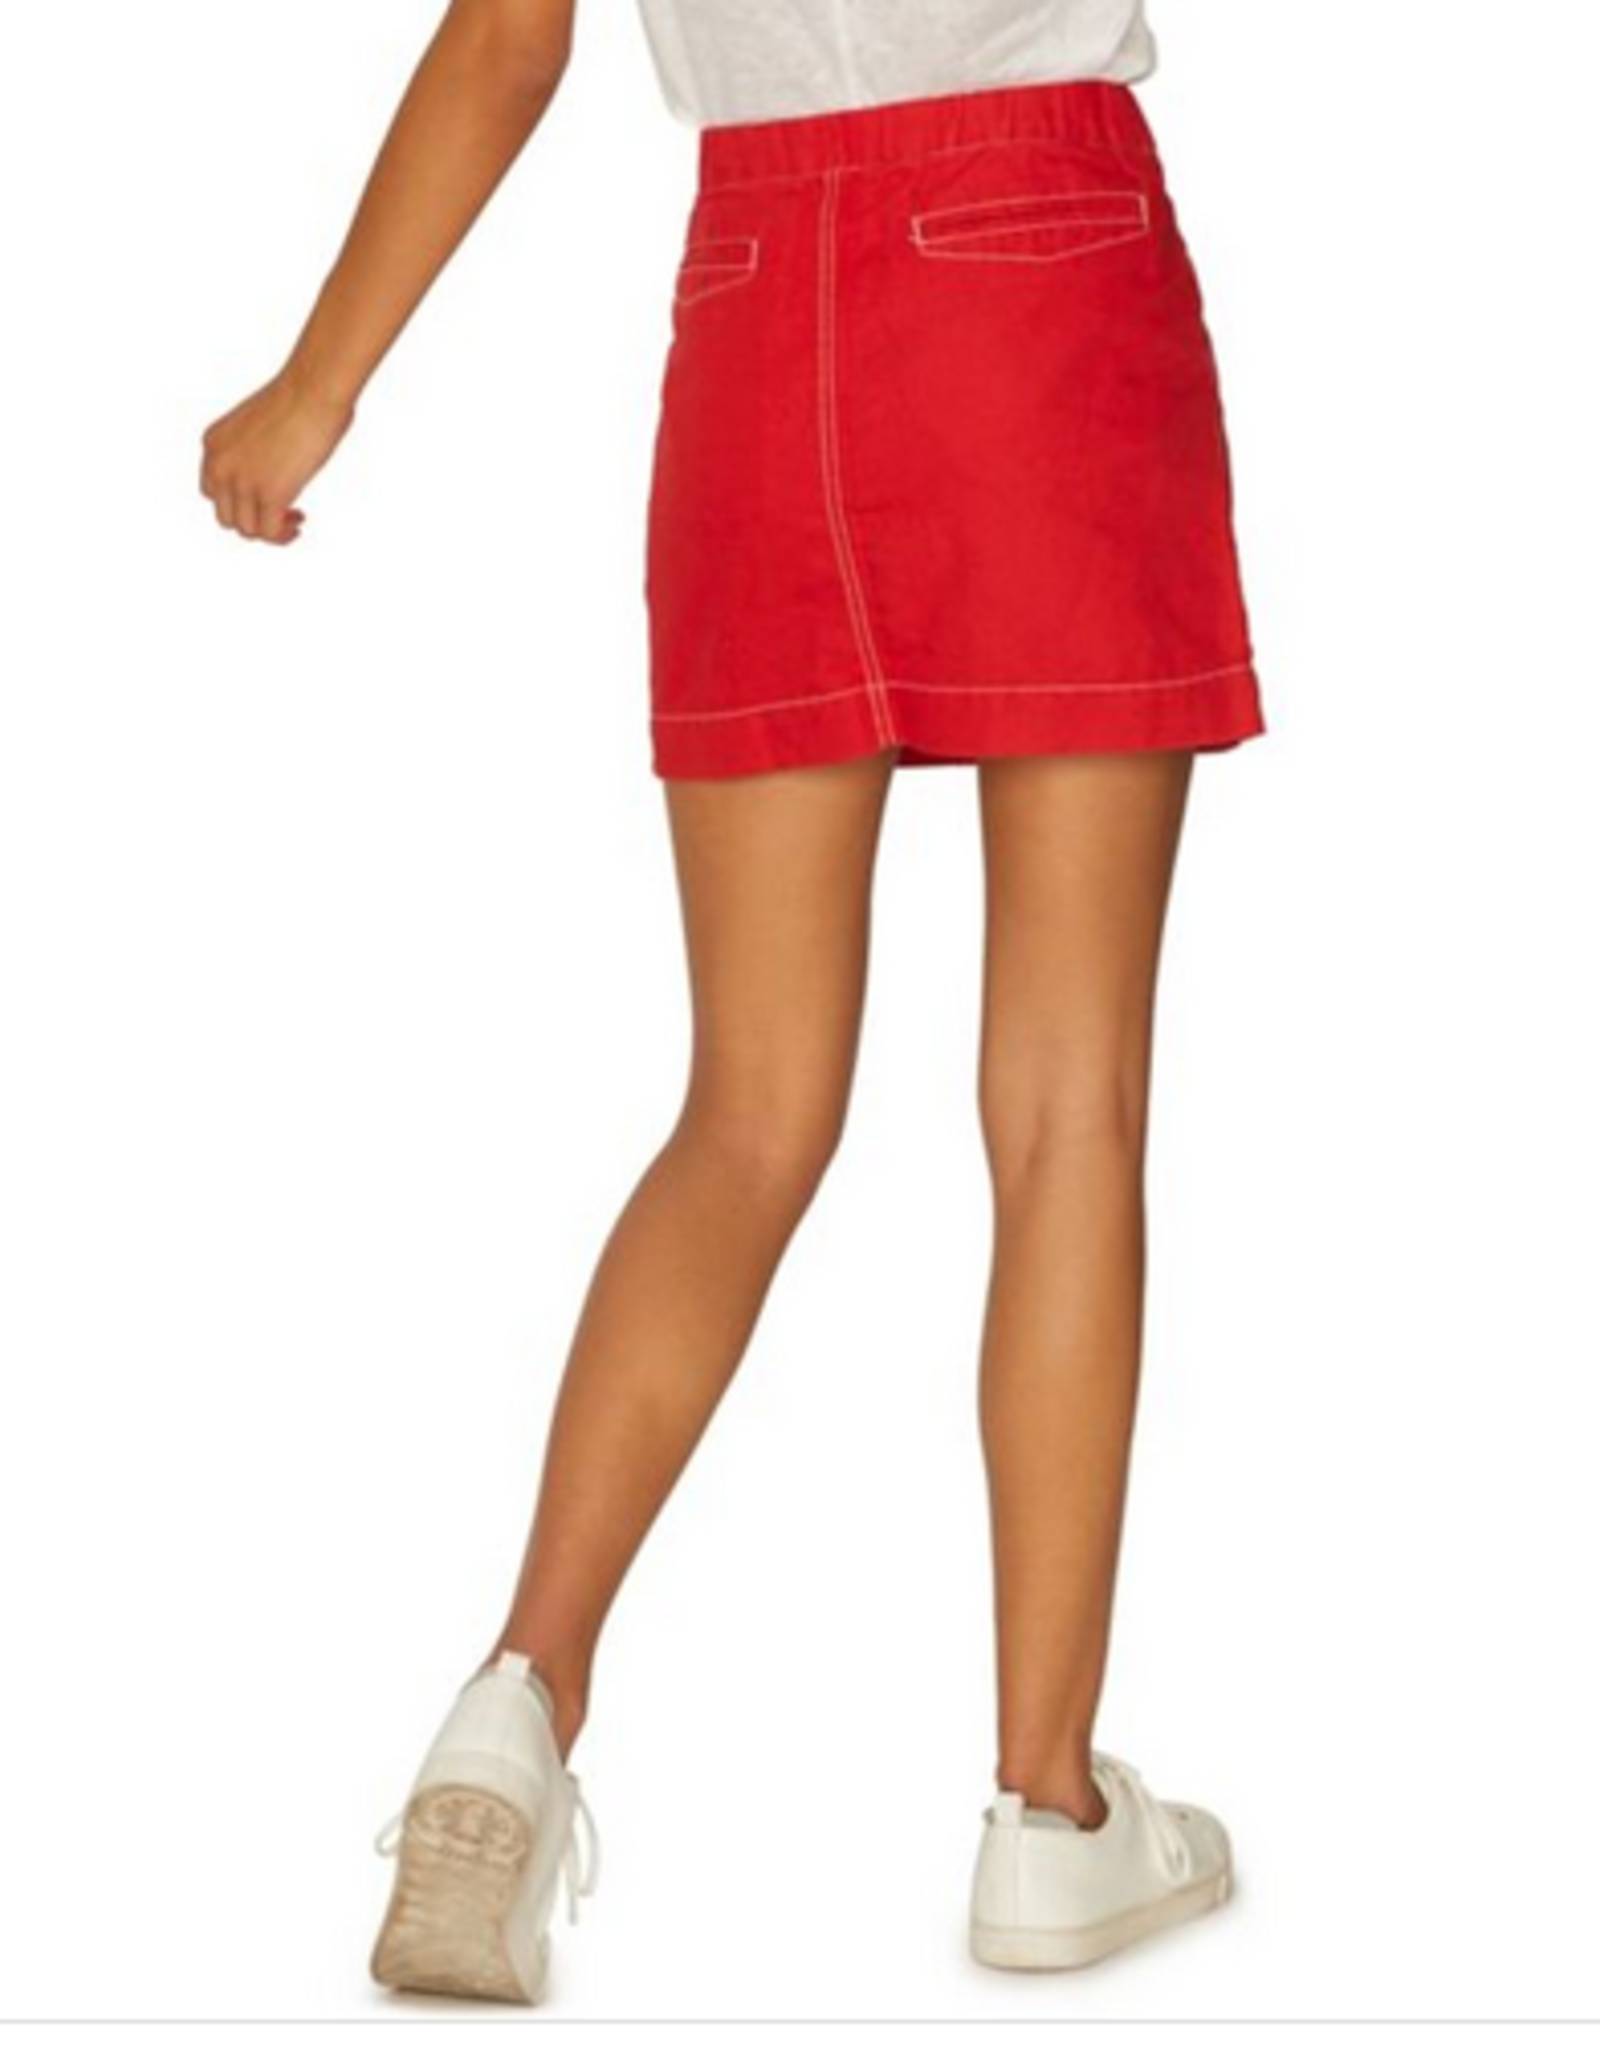 Peace March skirt